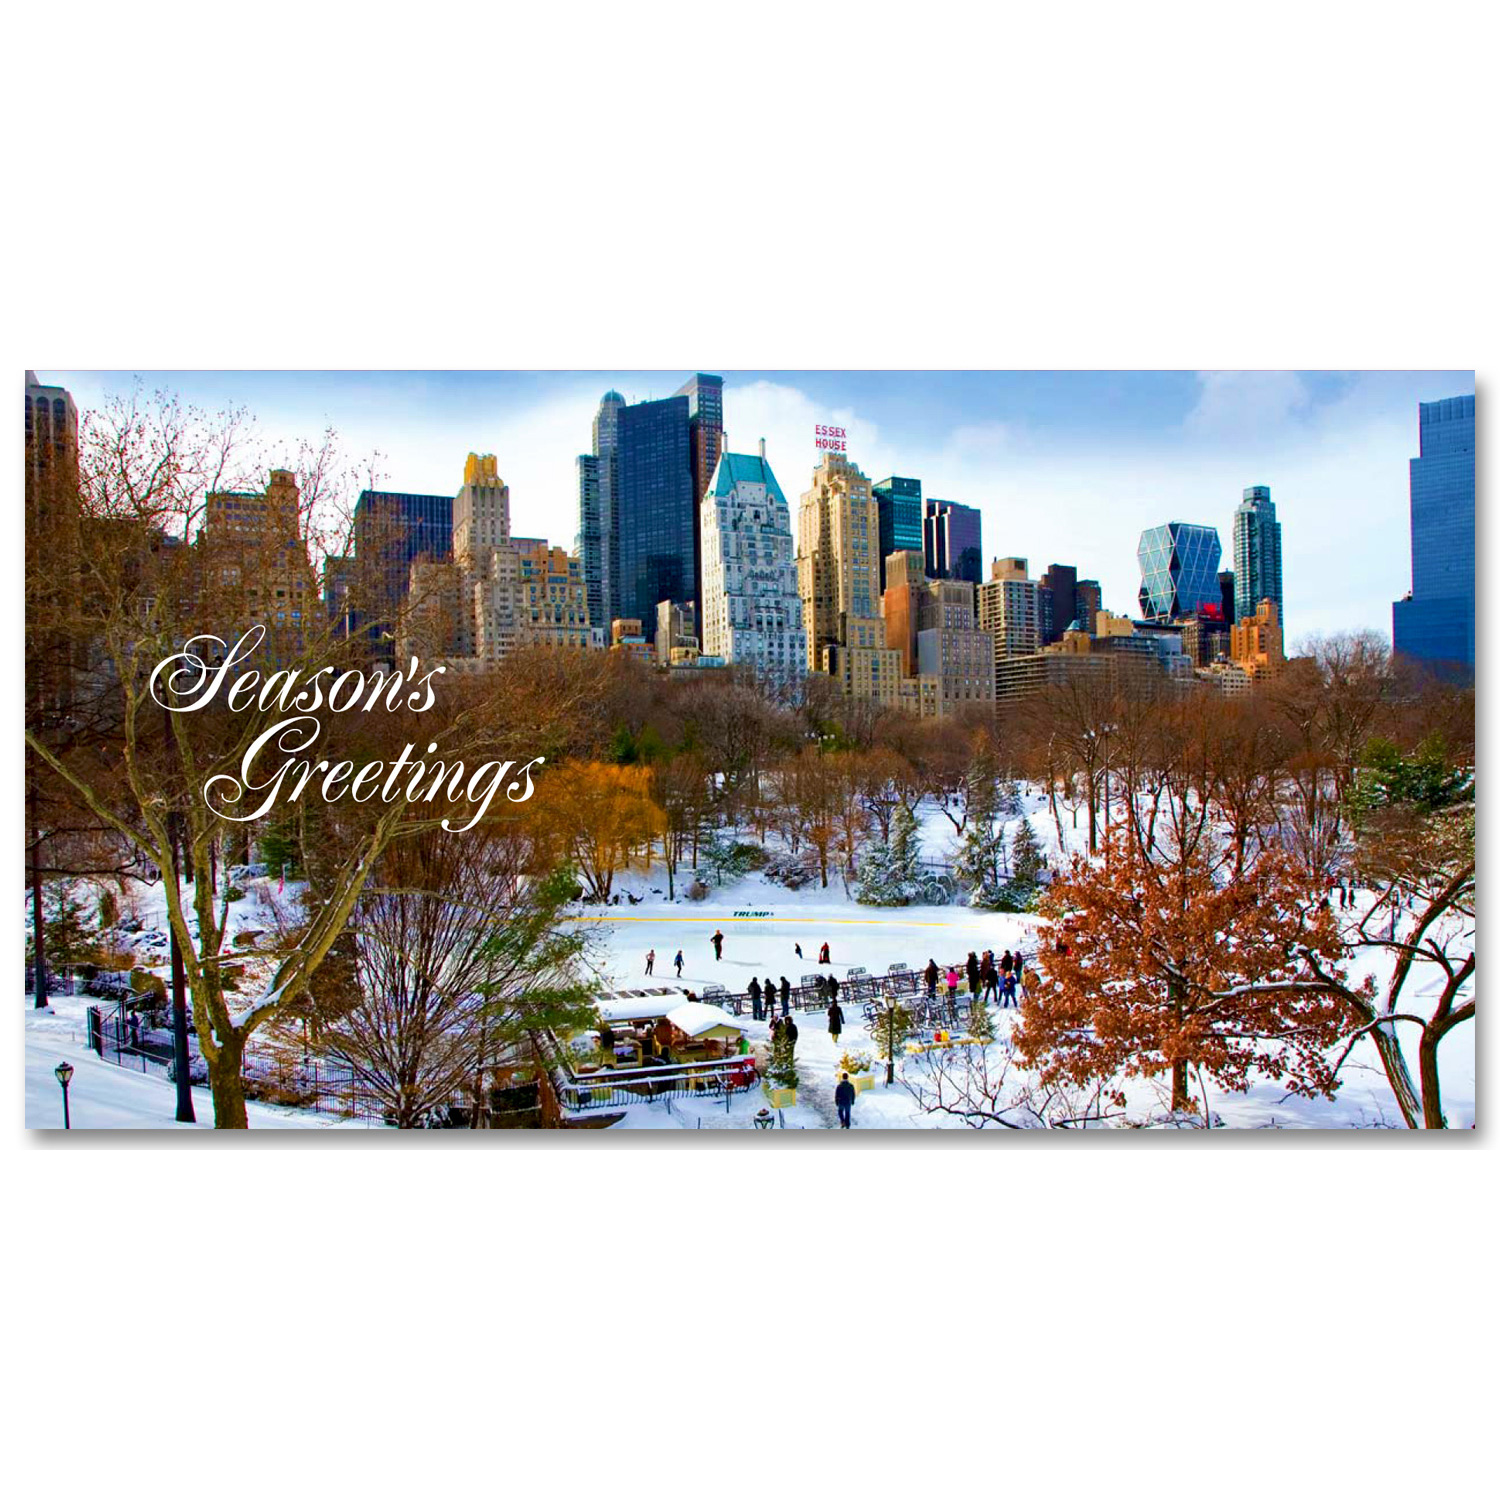 Holidays Money Greeting Cards Holders Wollman Rink In Central Park